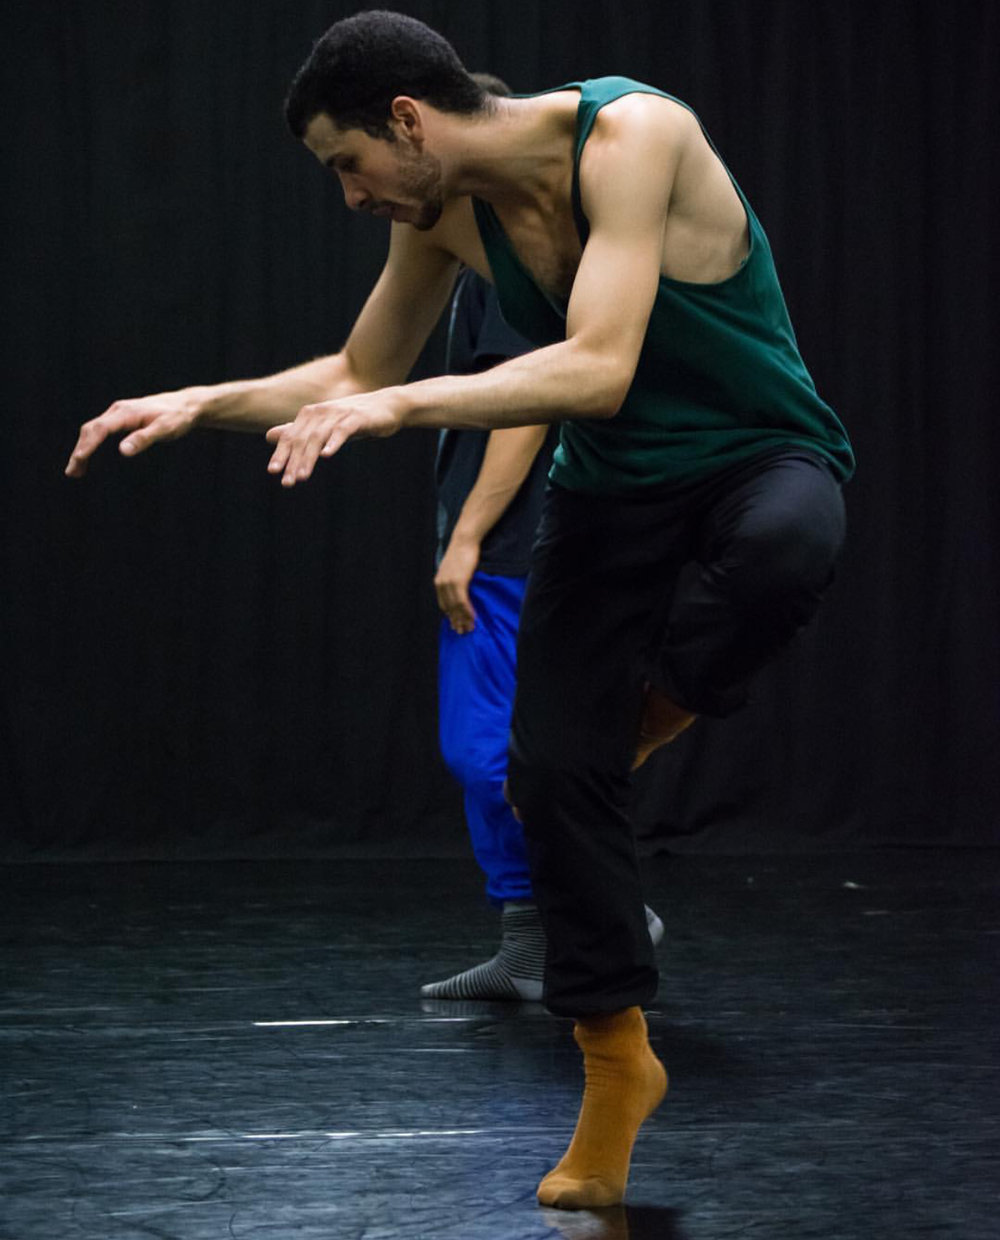 Mario Gonzalez - Mario Gonzalez is a dancer and choreographer based in Chicago. After receiving his BFA from SUNY Purchase Conservatory of Dance he joined American Repertory Ballet in Princeton NJ. Currently he is dancing with Visceral Dance Chicago. During his career he has had the opportunity to work in creative processes with Danielle Agami, Nicolo Fonte, MadBoots Dance, Kevin O'Day, Erica Sobol, Doug Varone, and Ema Yuasa. He was selected to present his piece